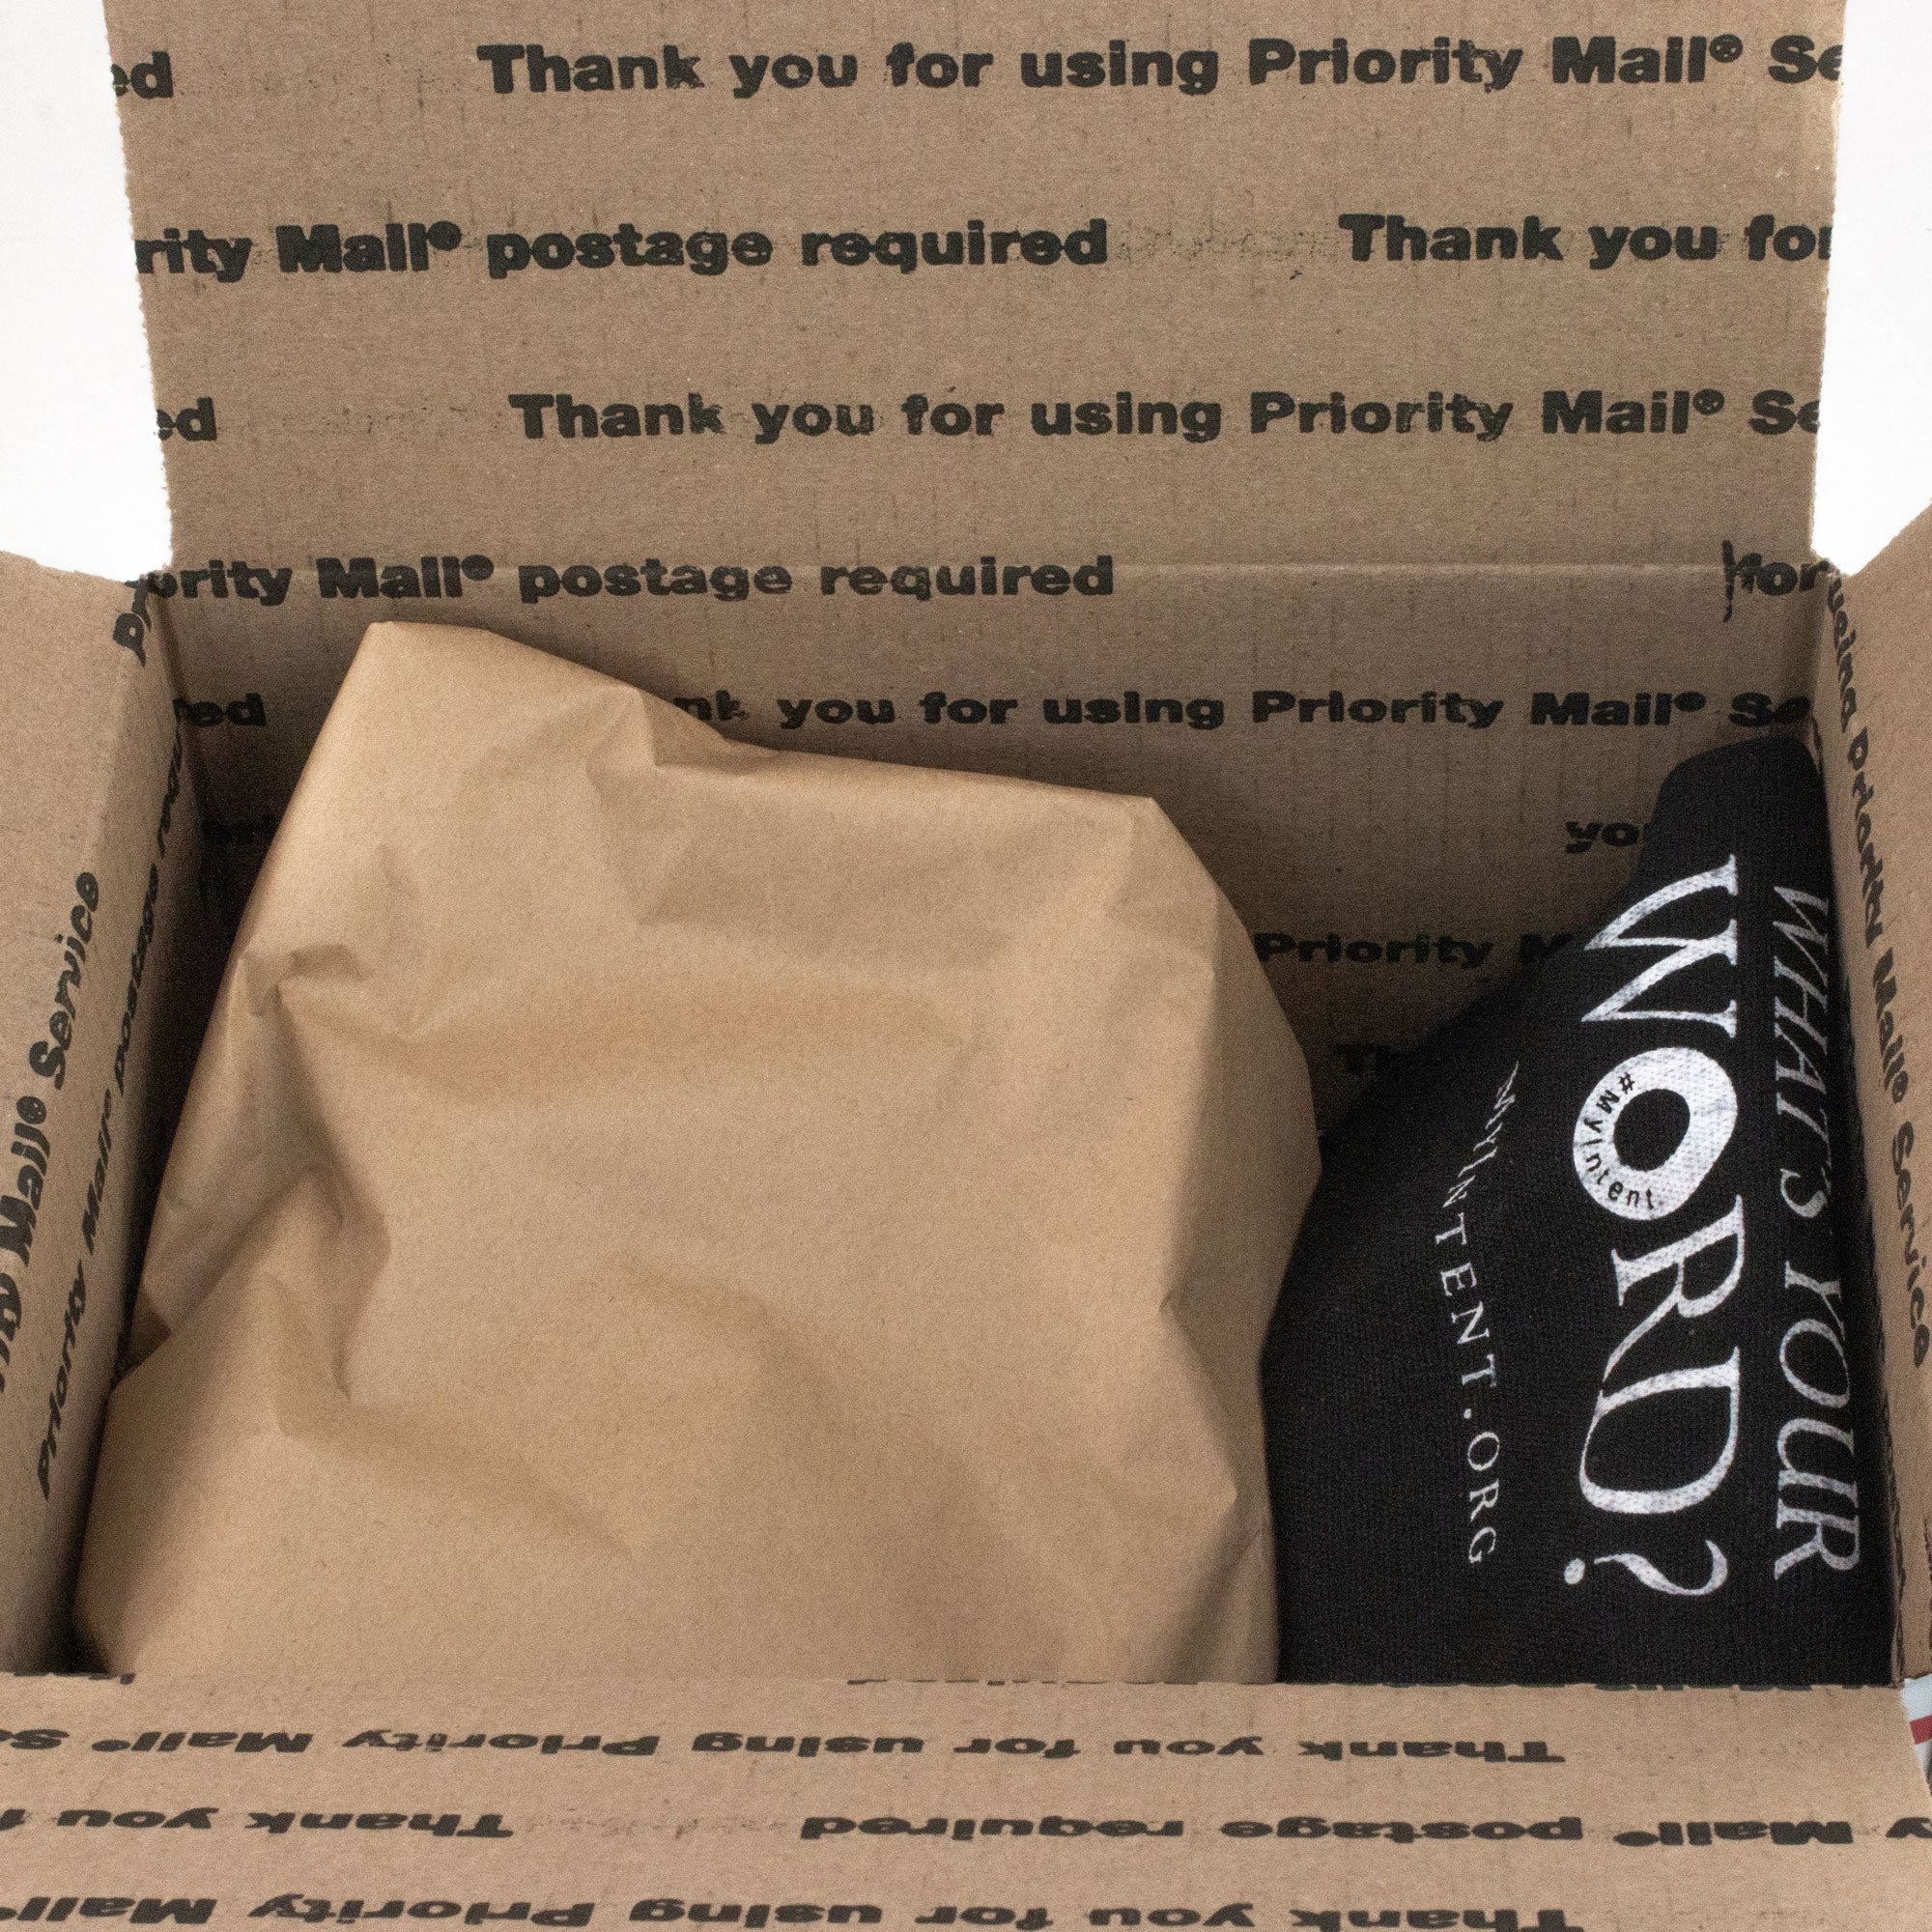 All MyIntent Maker Kits come perfectly packaged and secured in a shipping box